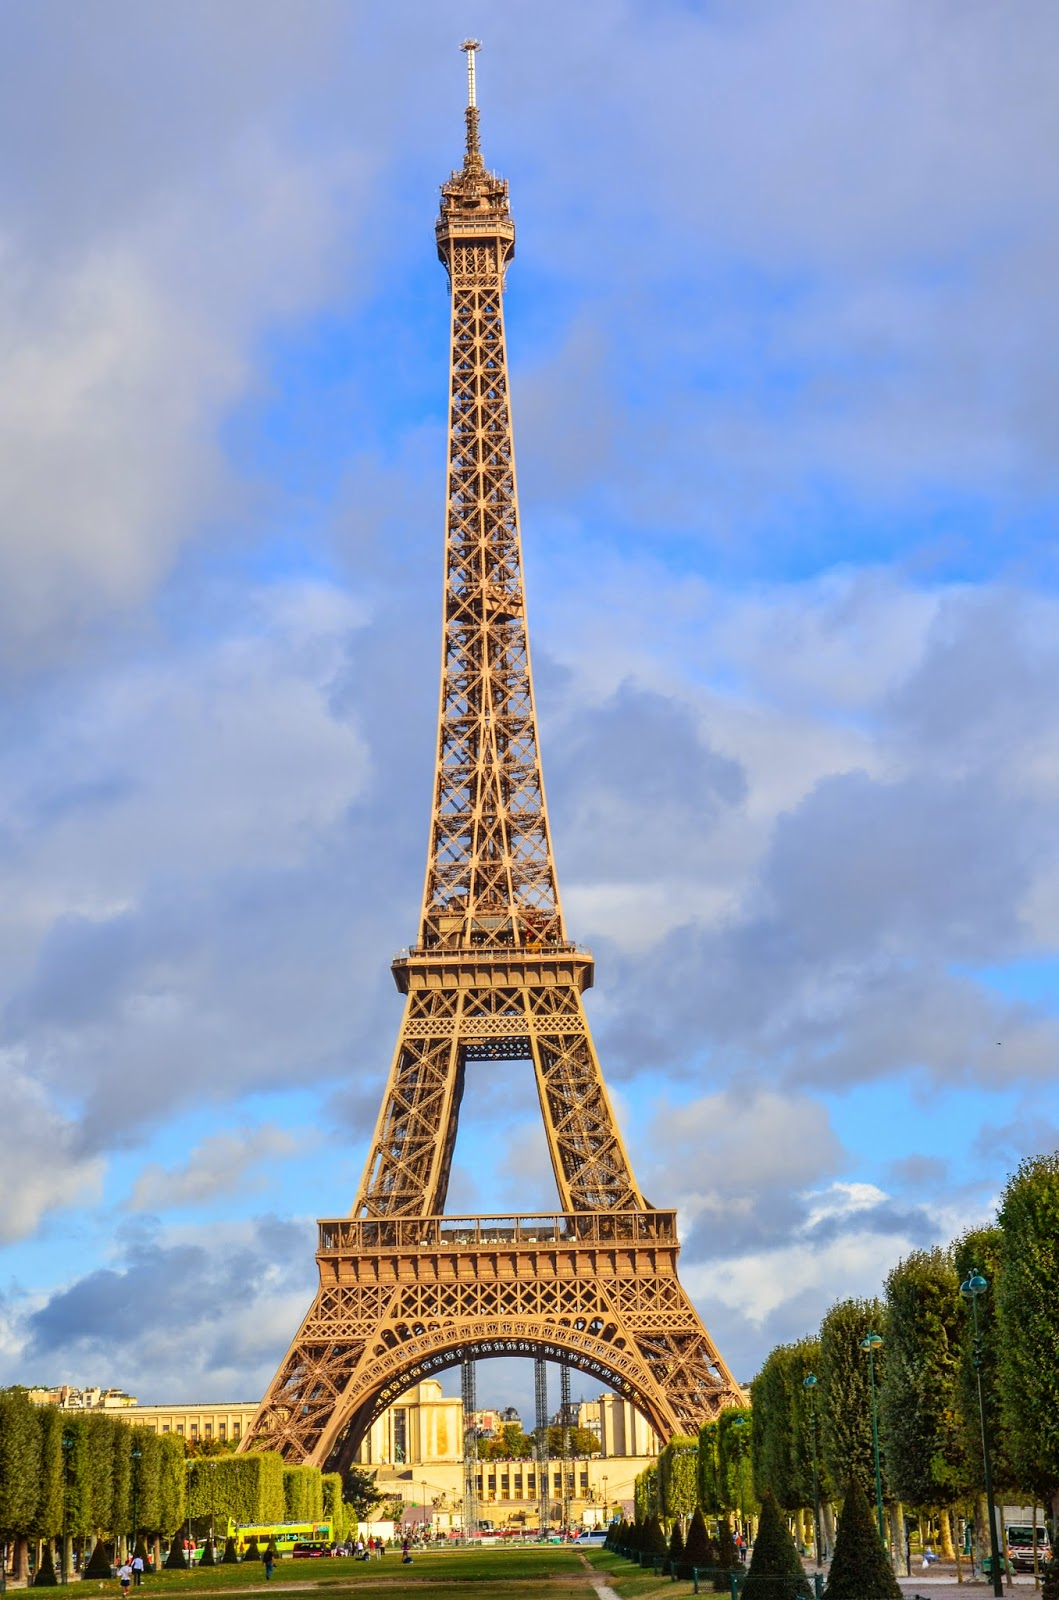 Our Adventures in England: Paris and the Eiffel Tower